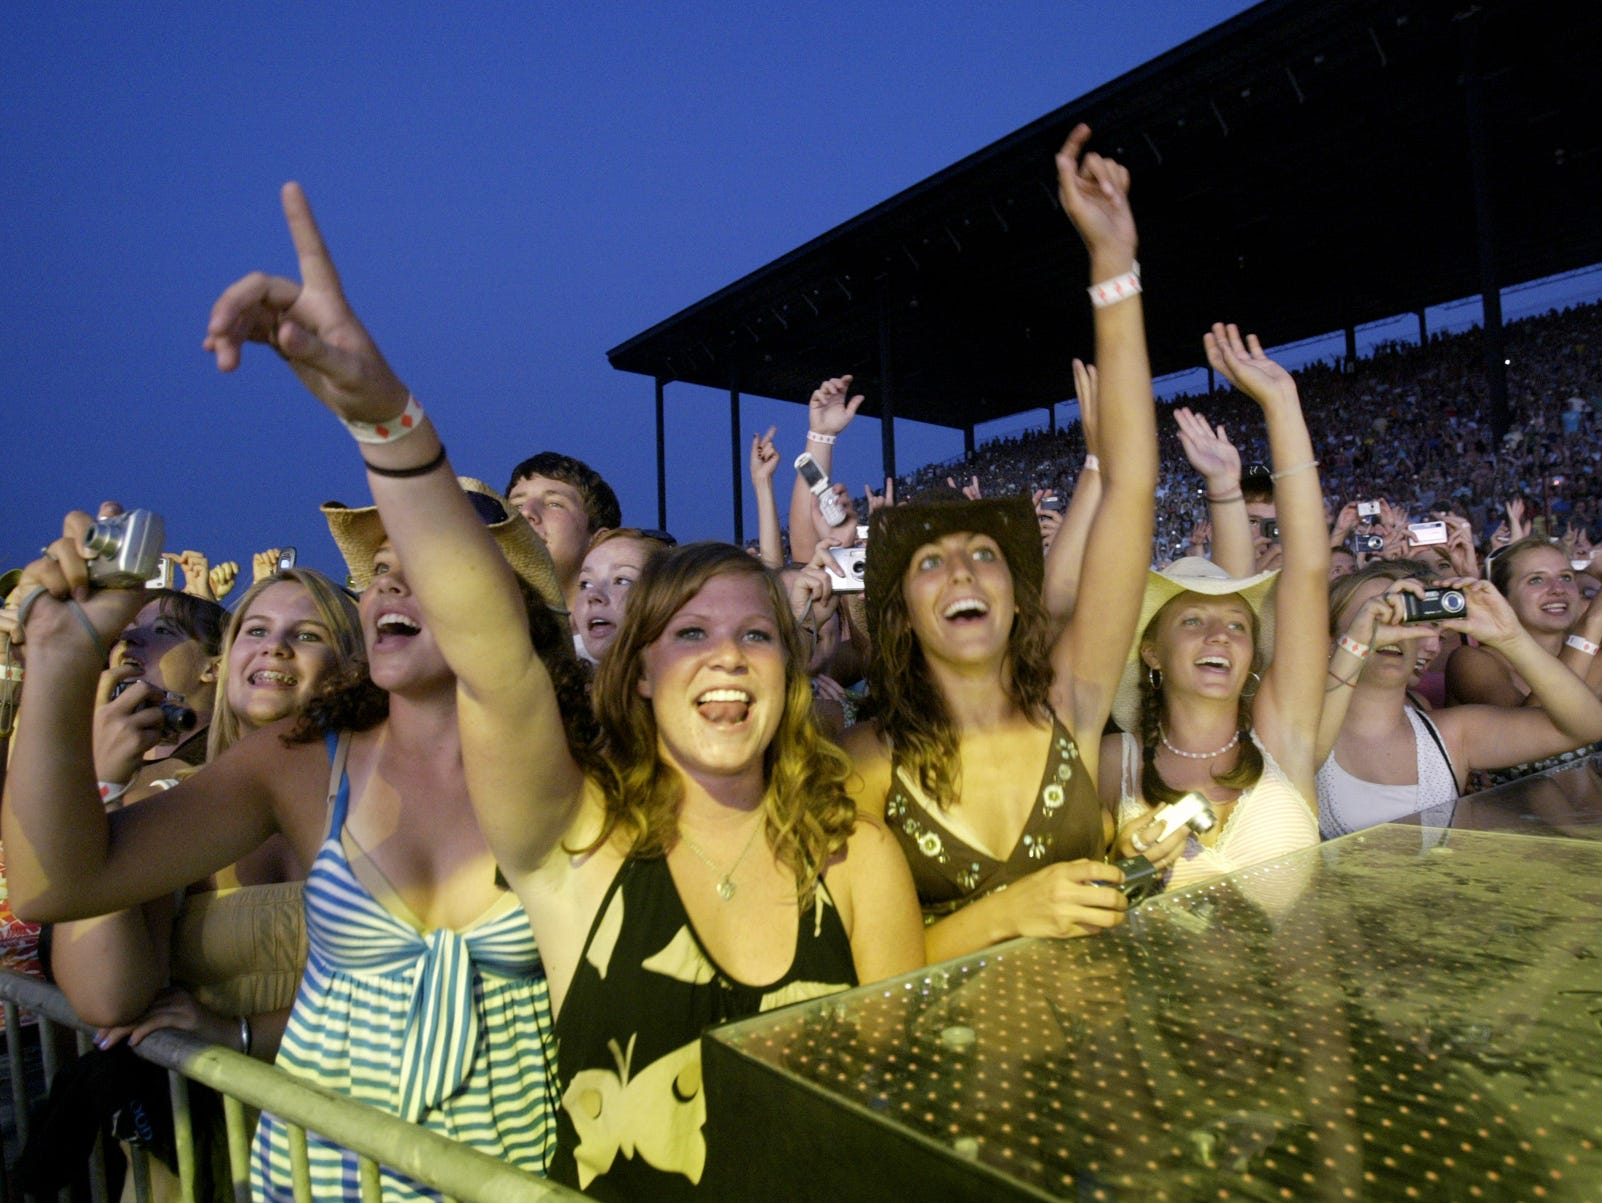 A group of fans from Hamilton Southeastern High School in Fishers cheer for Rascal Flatts  at the Rascal Flatts concert at the Grandstand at the 2007 Indiana State Fair Friday August 10.